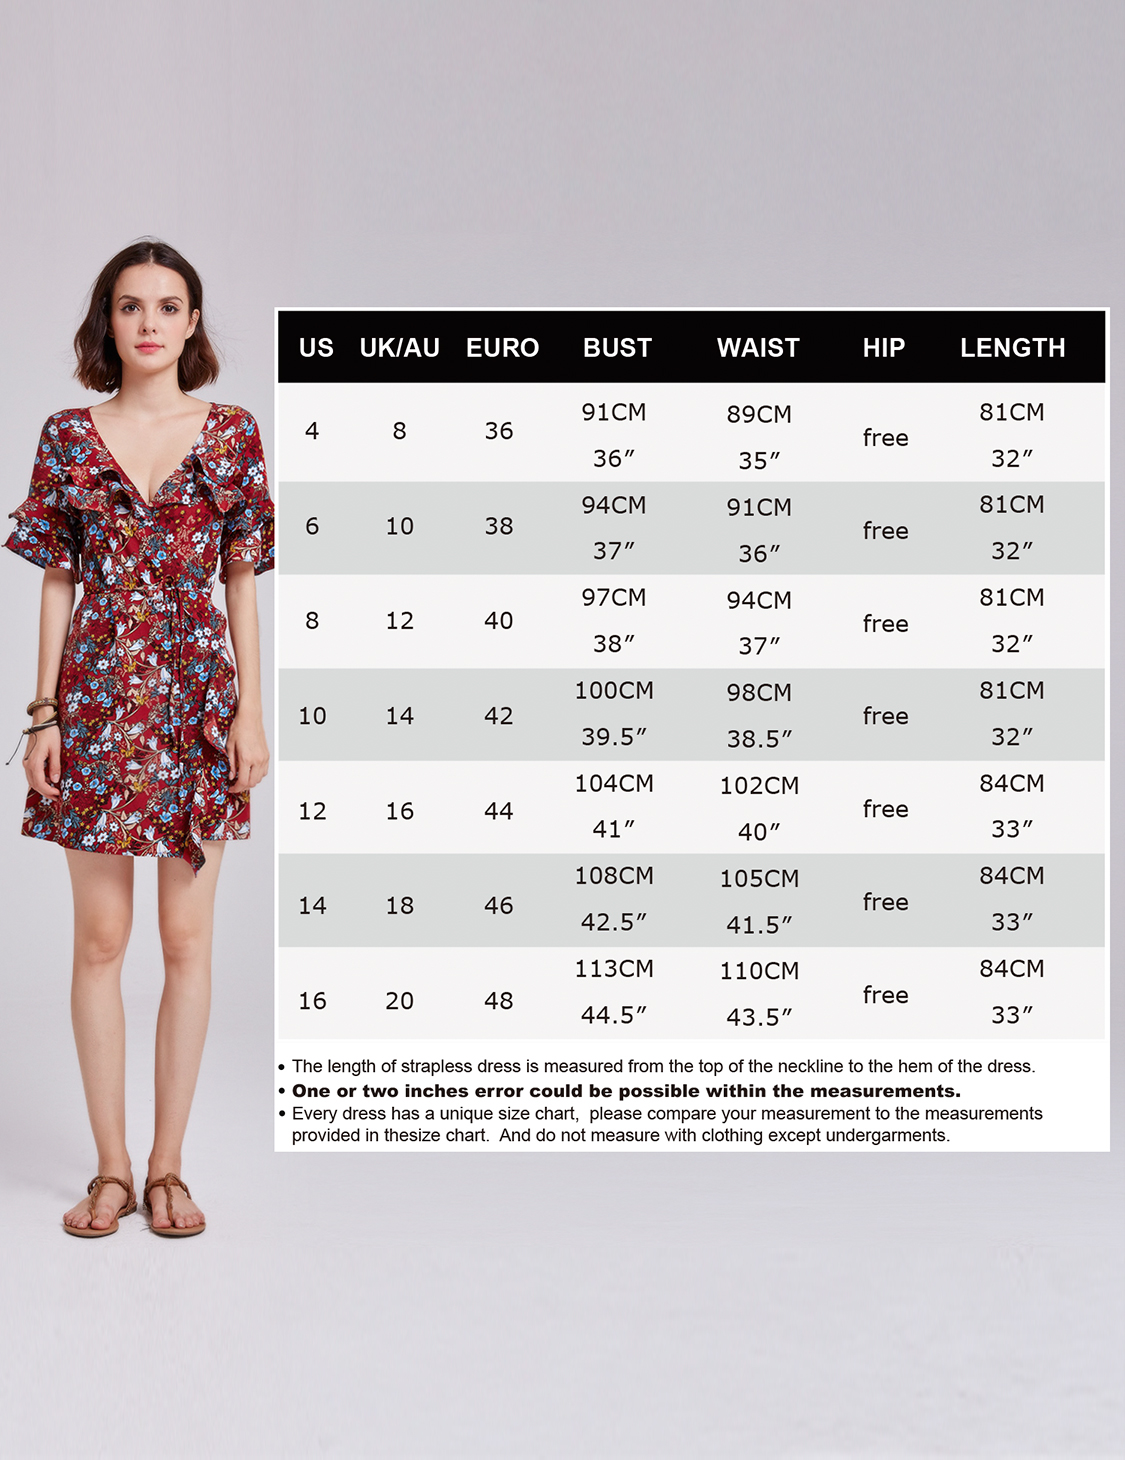 Alisa-pan-Short-Floral-Summer-Casual-Dress-Floral-Holiday-Beach-Dress-05928